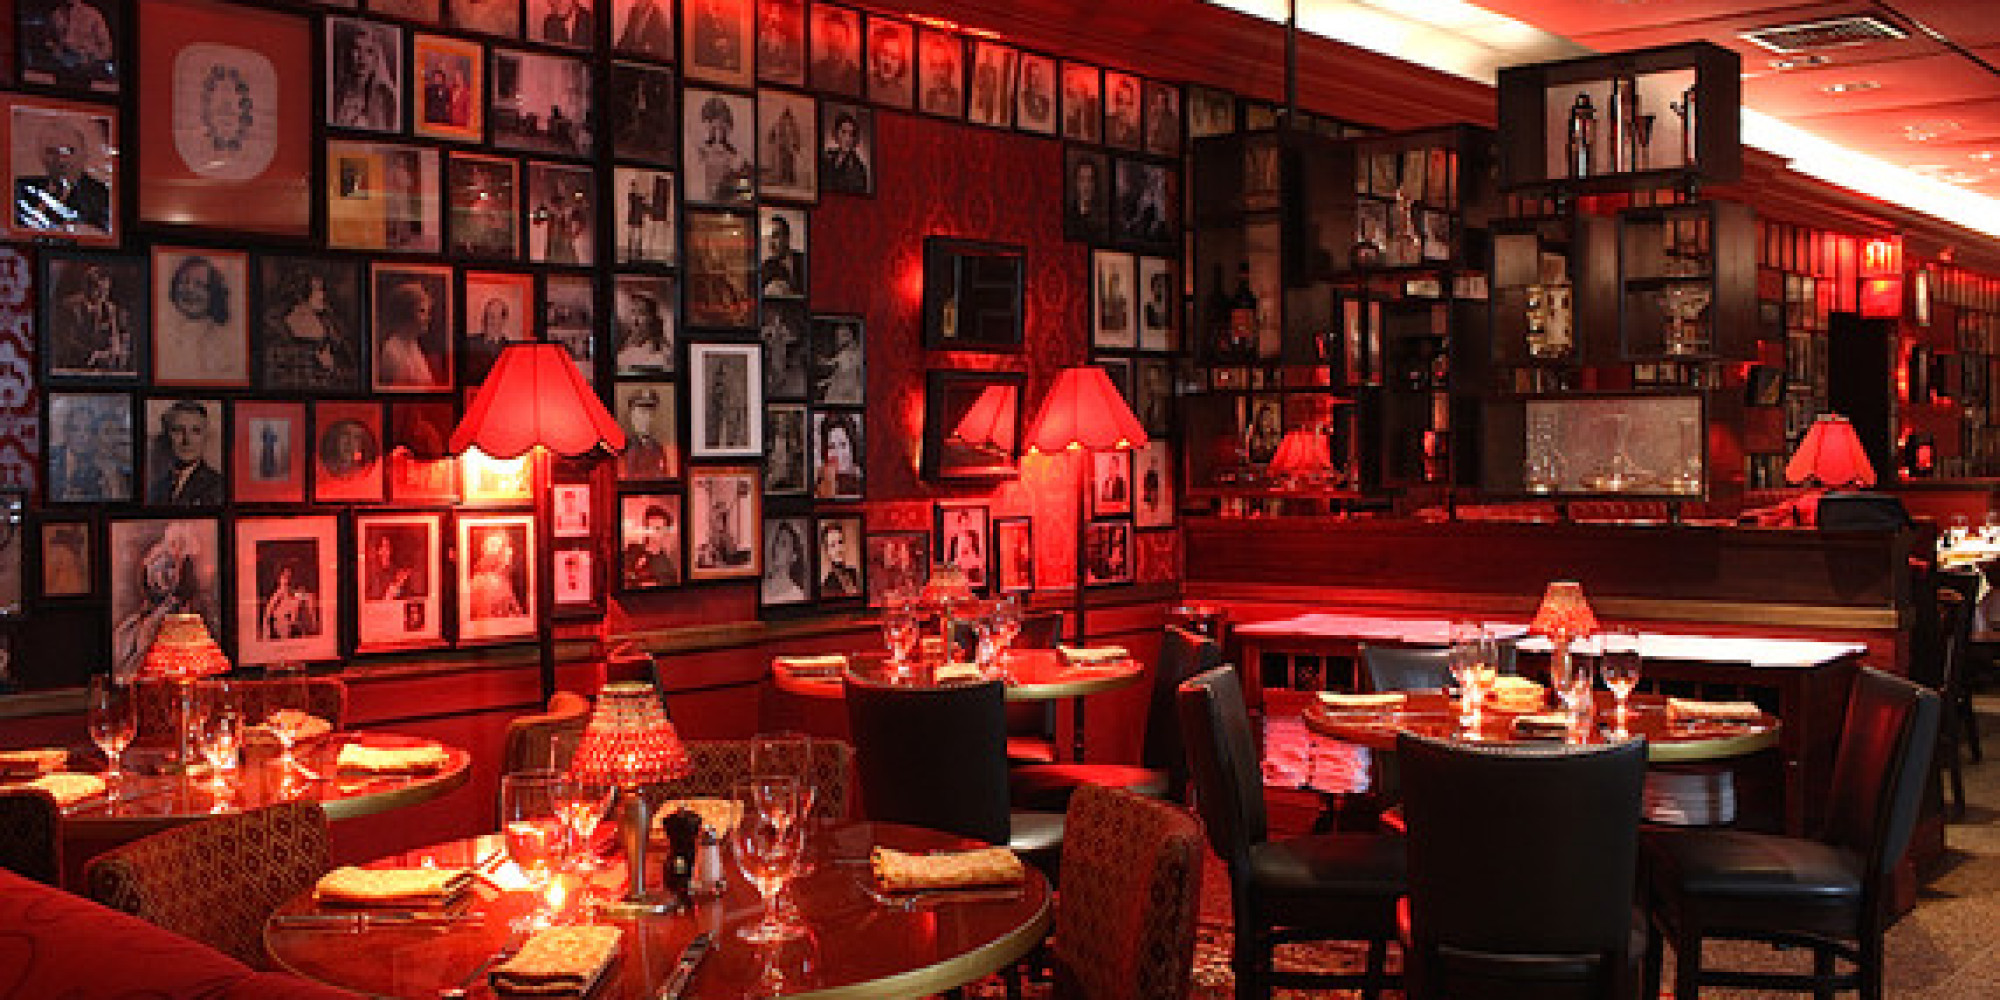 Strip House Differs in Far More Than Racy Décor | HuffPost